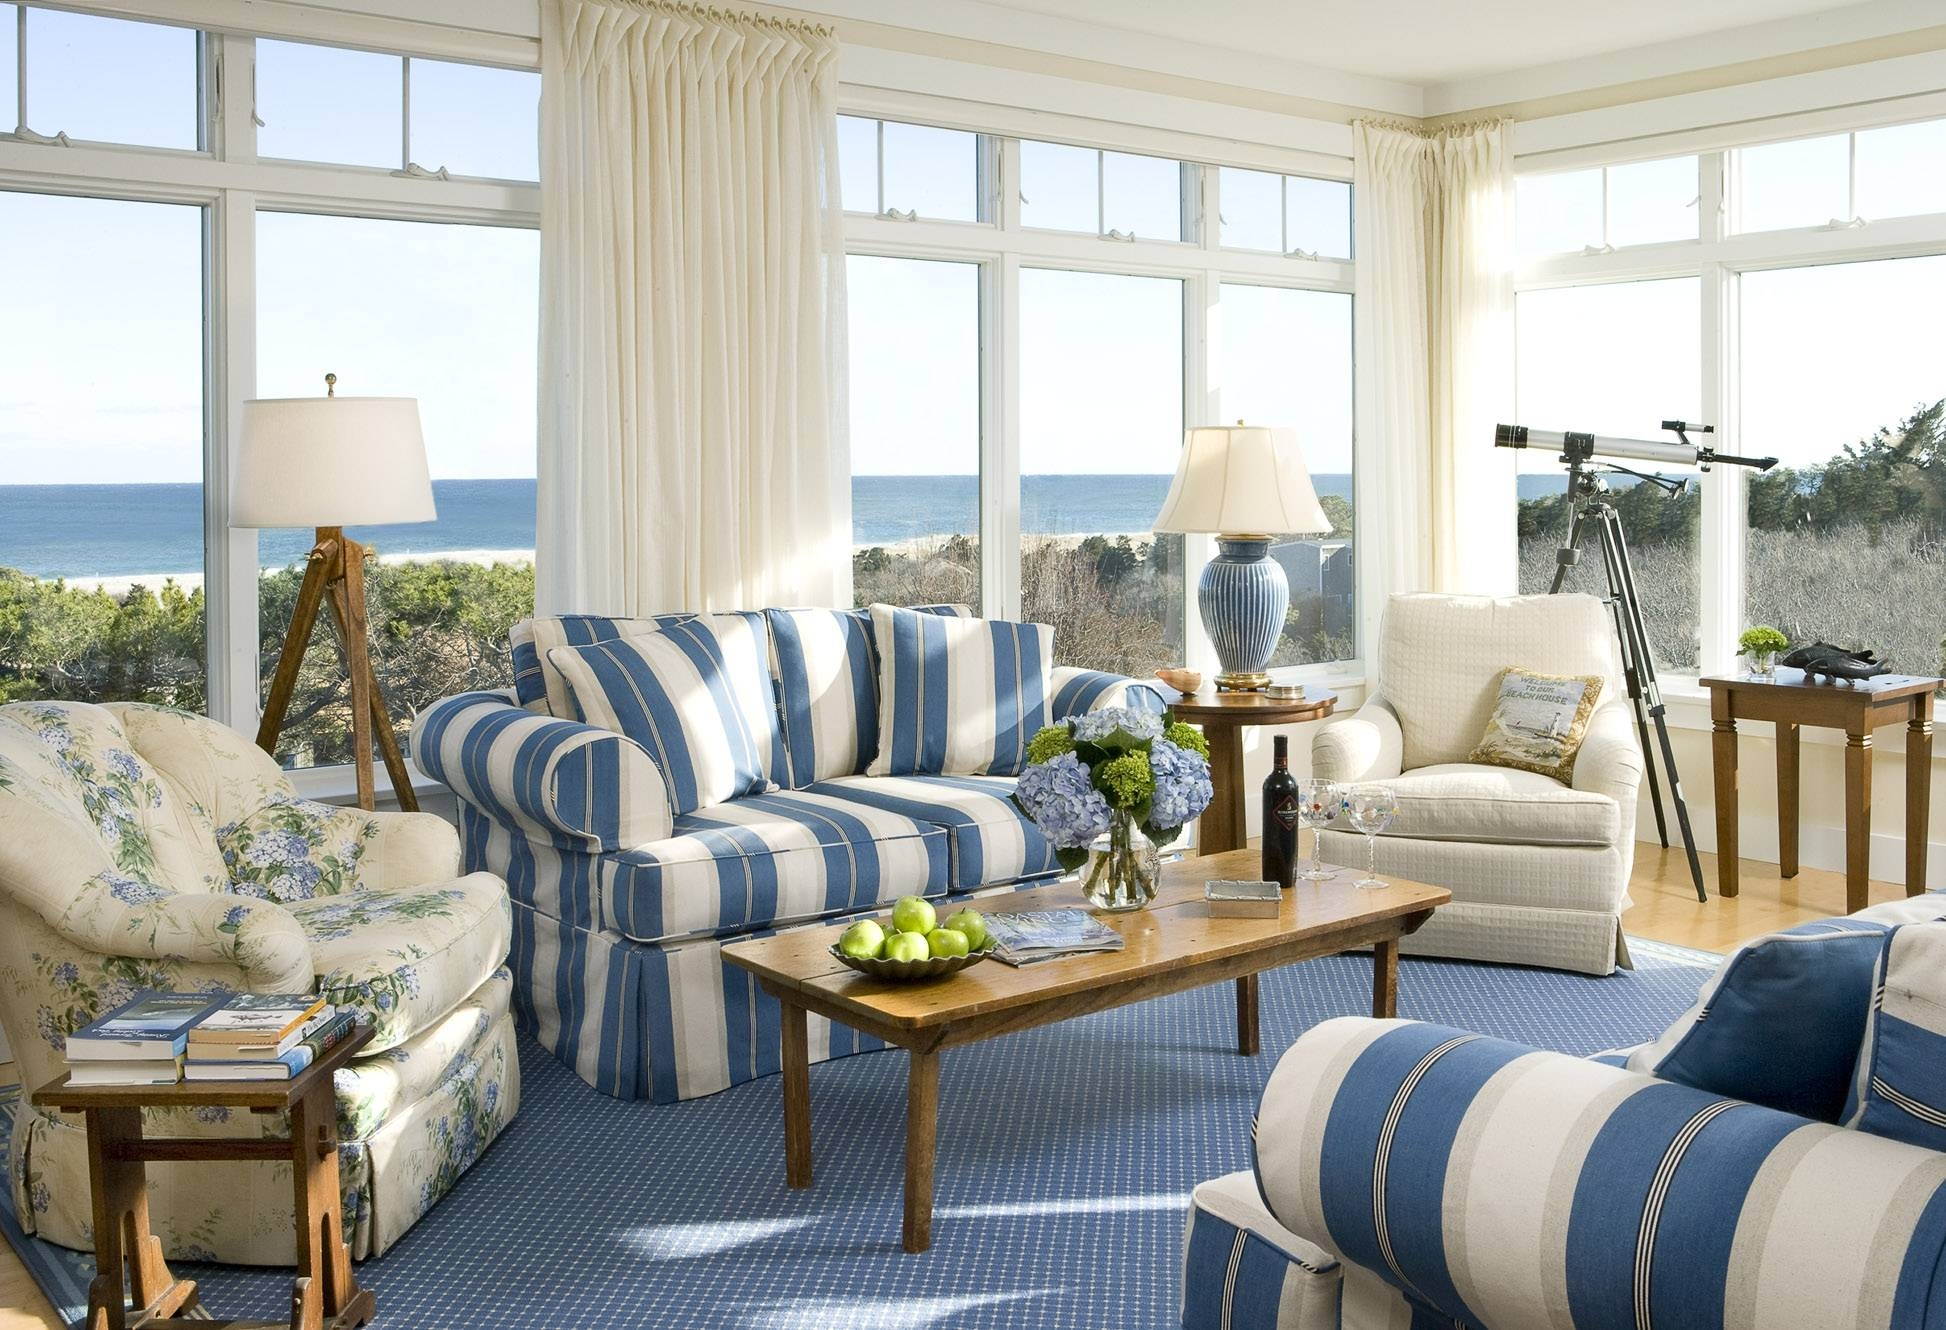 15 s Blue and White Striped Sofas